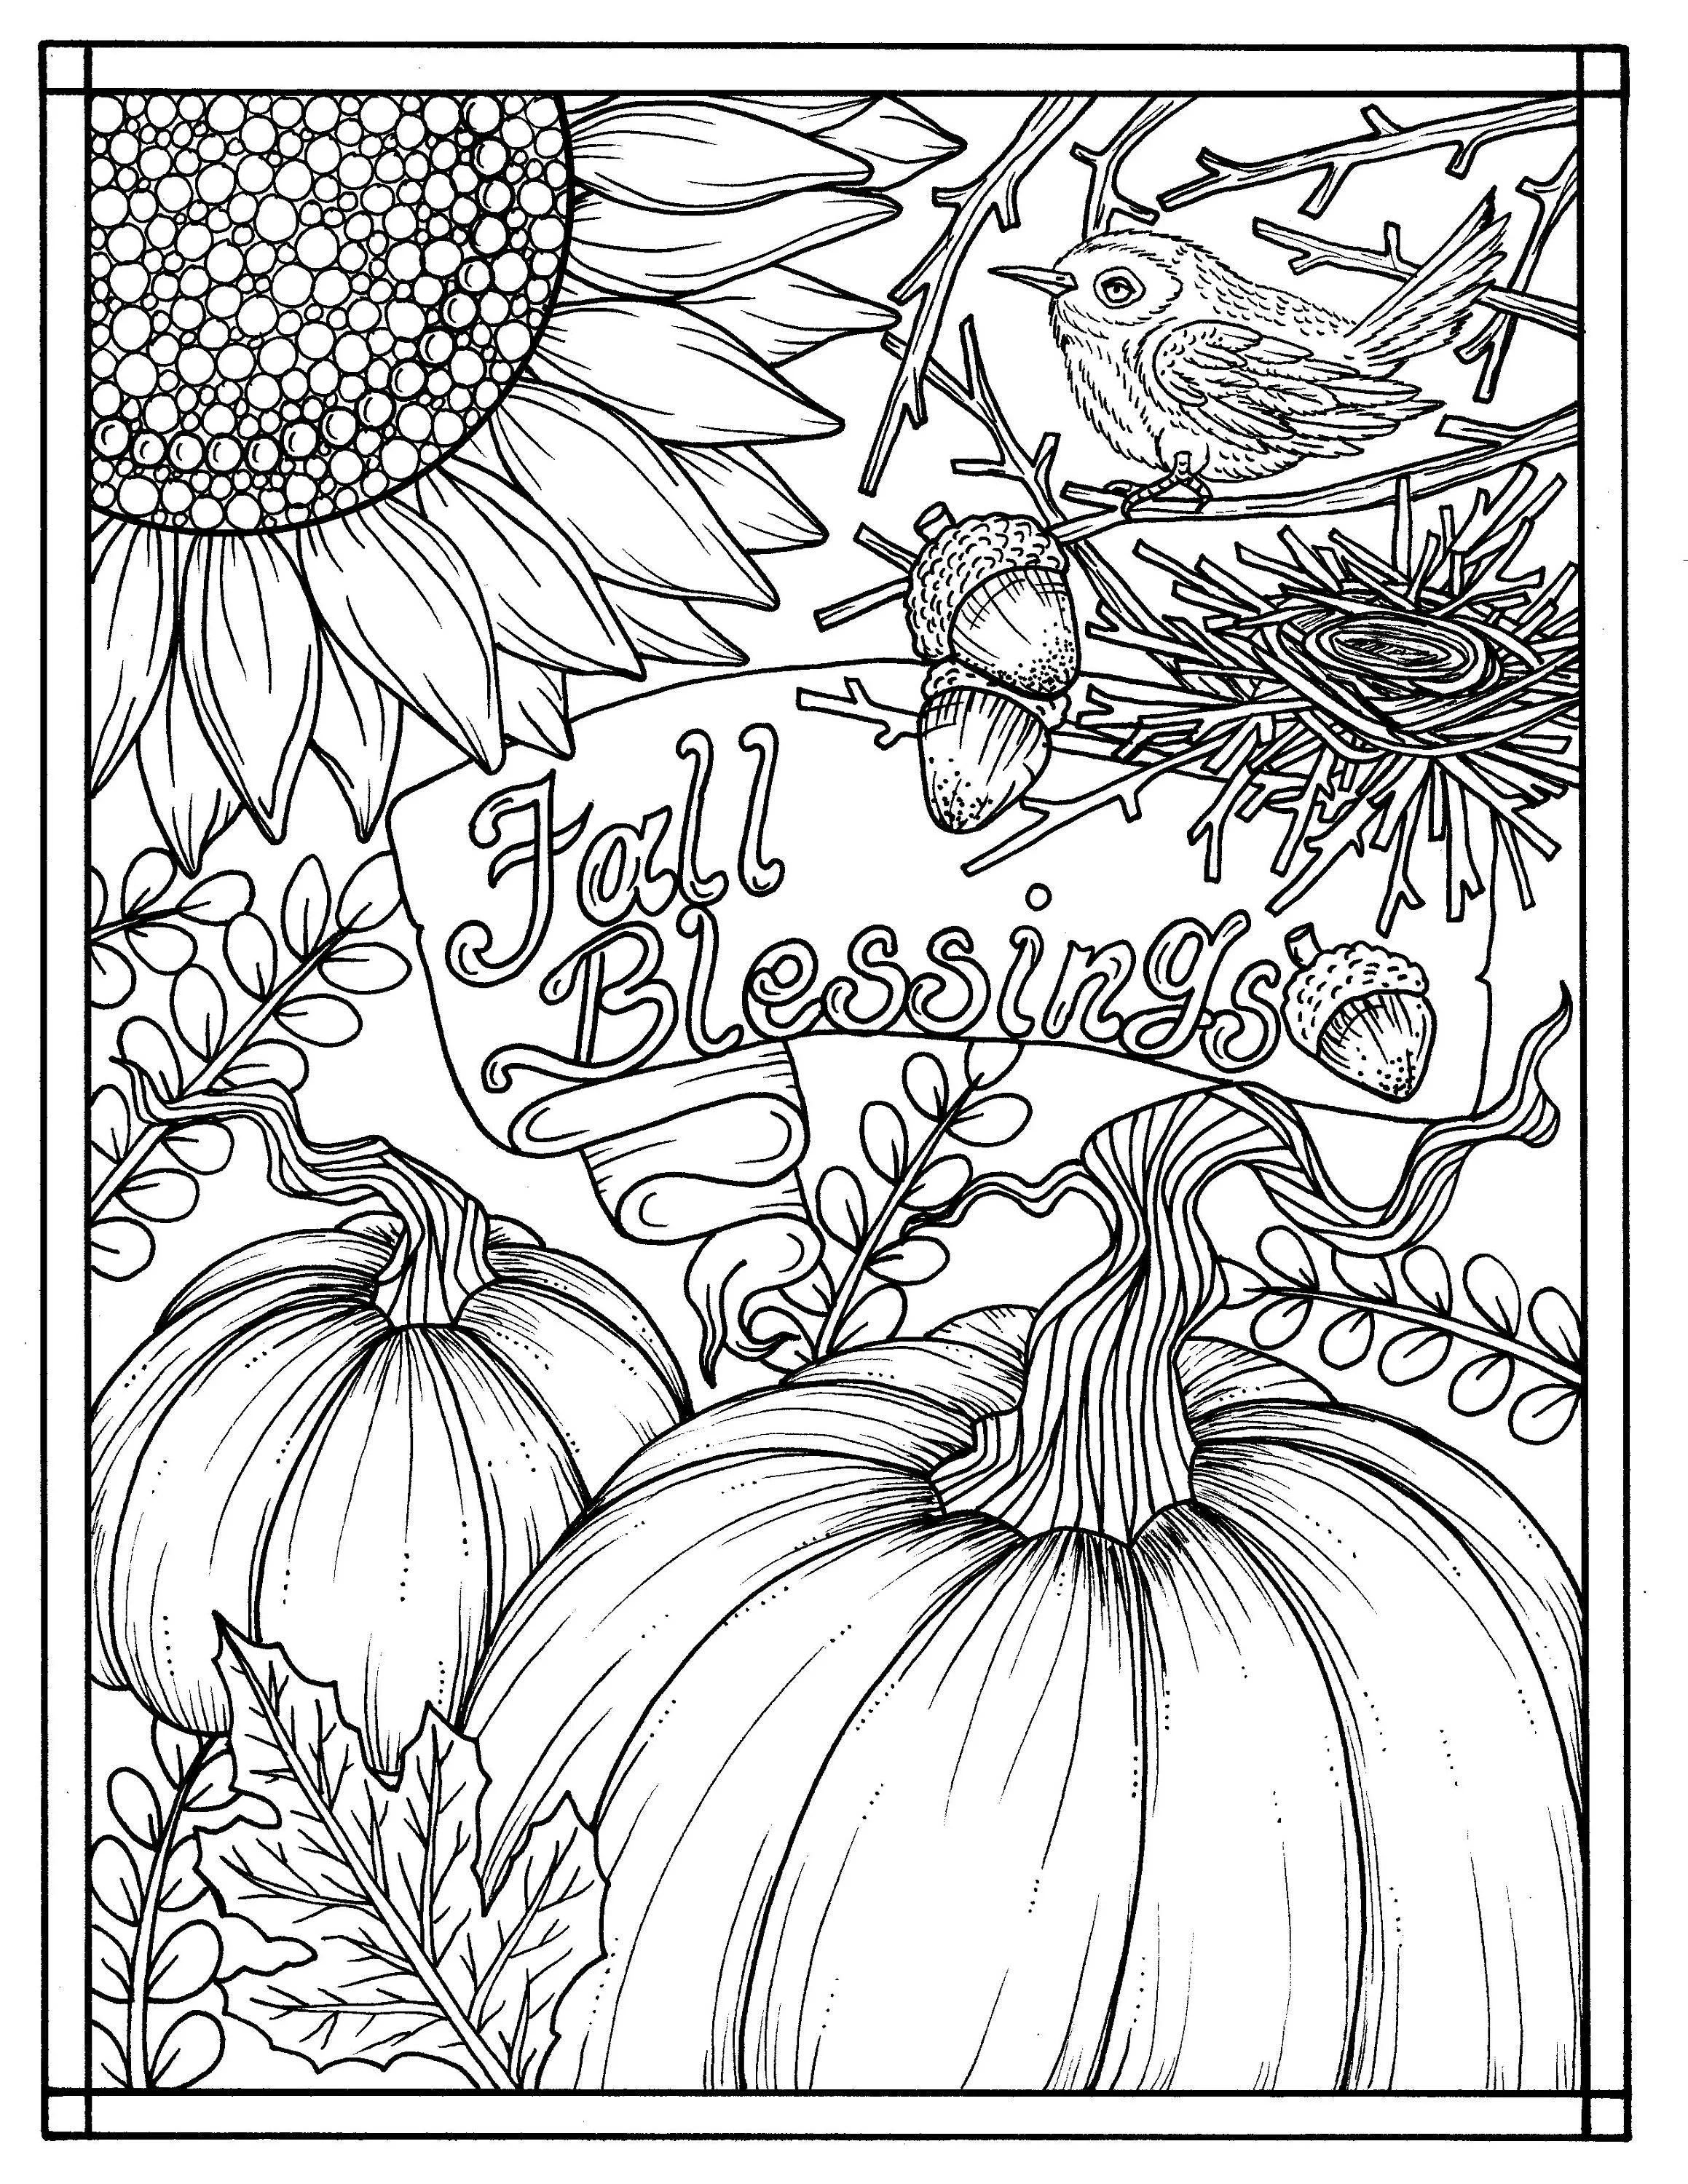 Download Fall Blessings Instant Digital Coloring Page Autumn